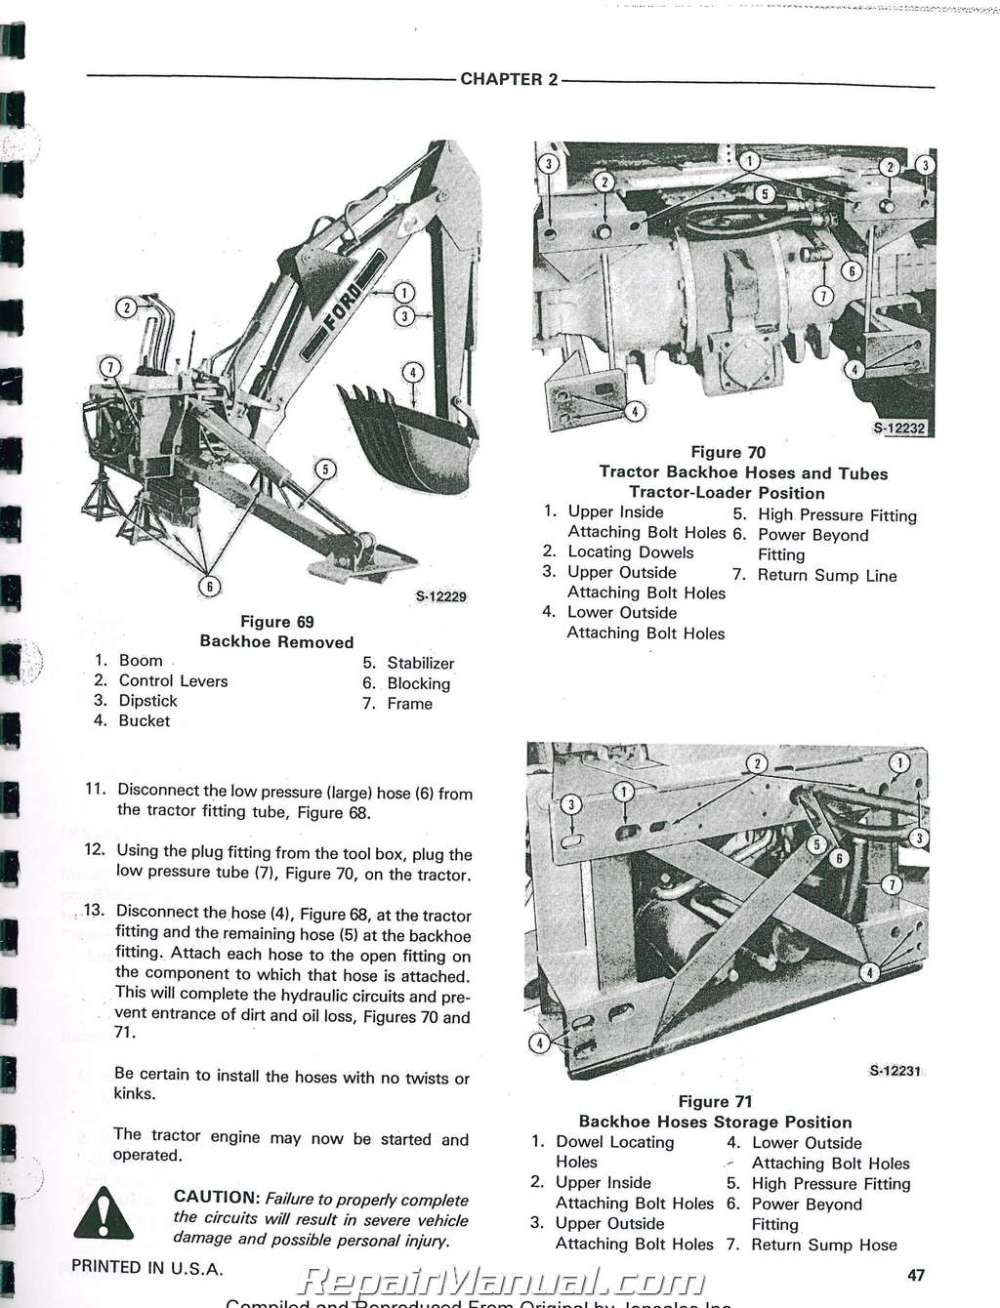 medium resolution of ford 555a 555b 655a tractor loader backhoe printed service manual rh repairmanual com ford 555 backhoe